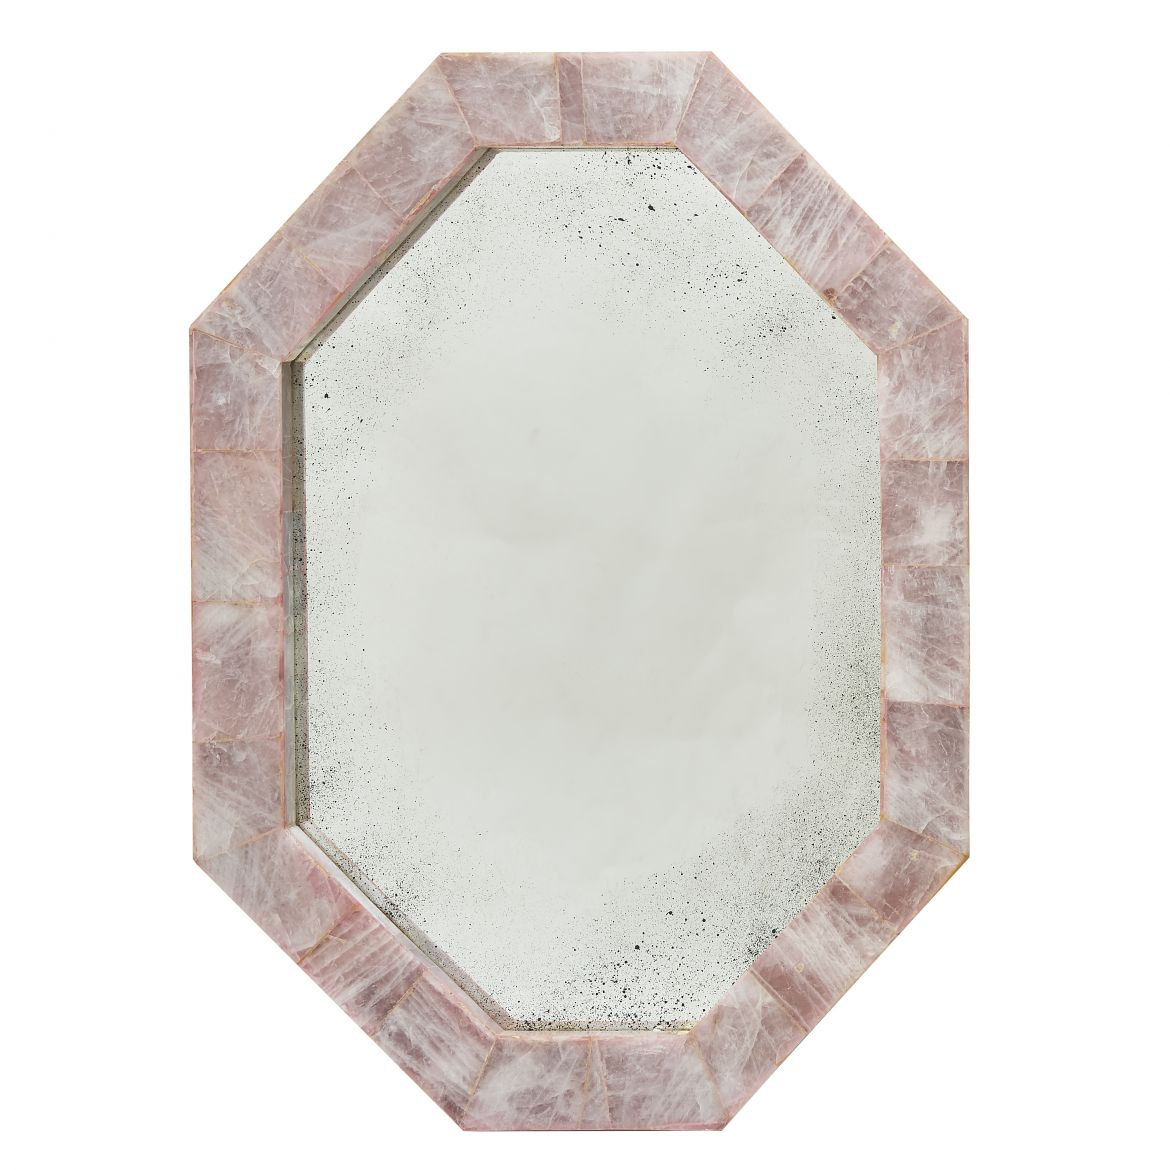 Rose Quartz Mirror